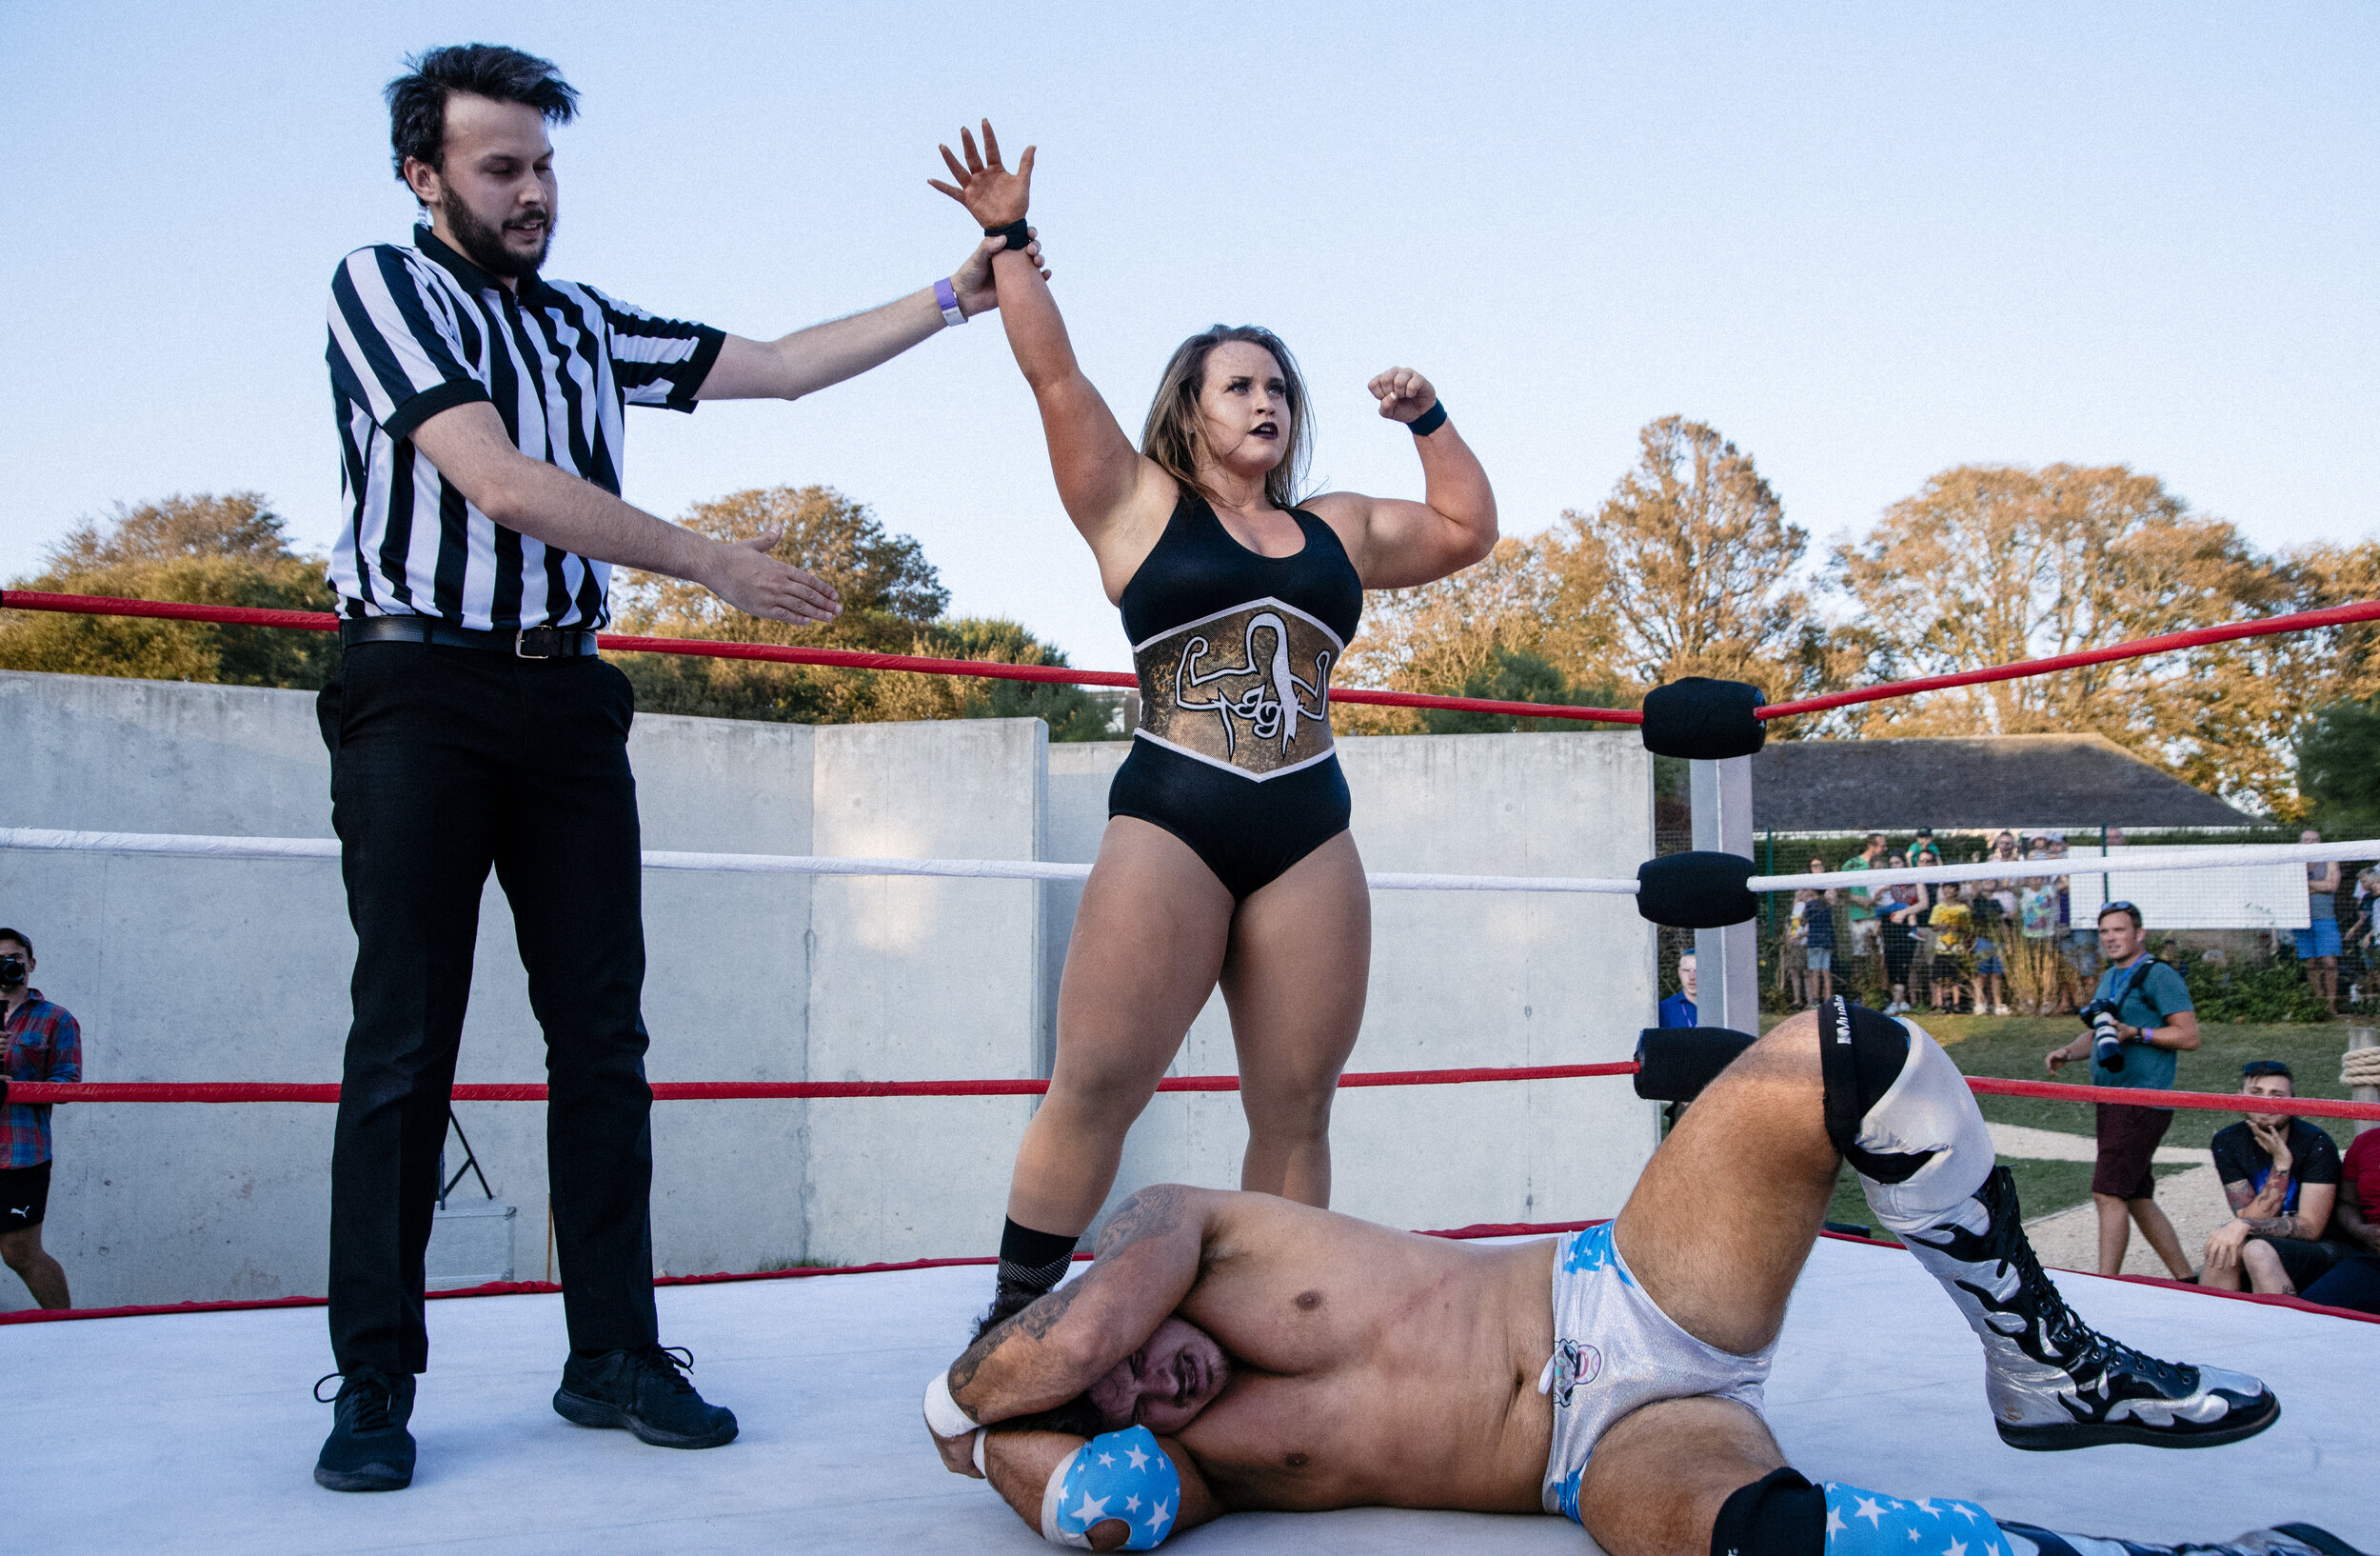 Jordynne Grace stands tall over Rob Lias at the Brighton Open Air Theatre (photo: The Head Drop)